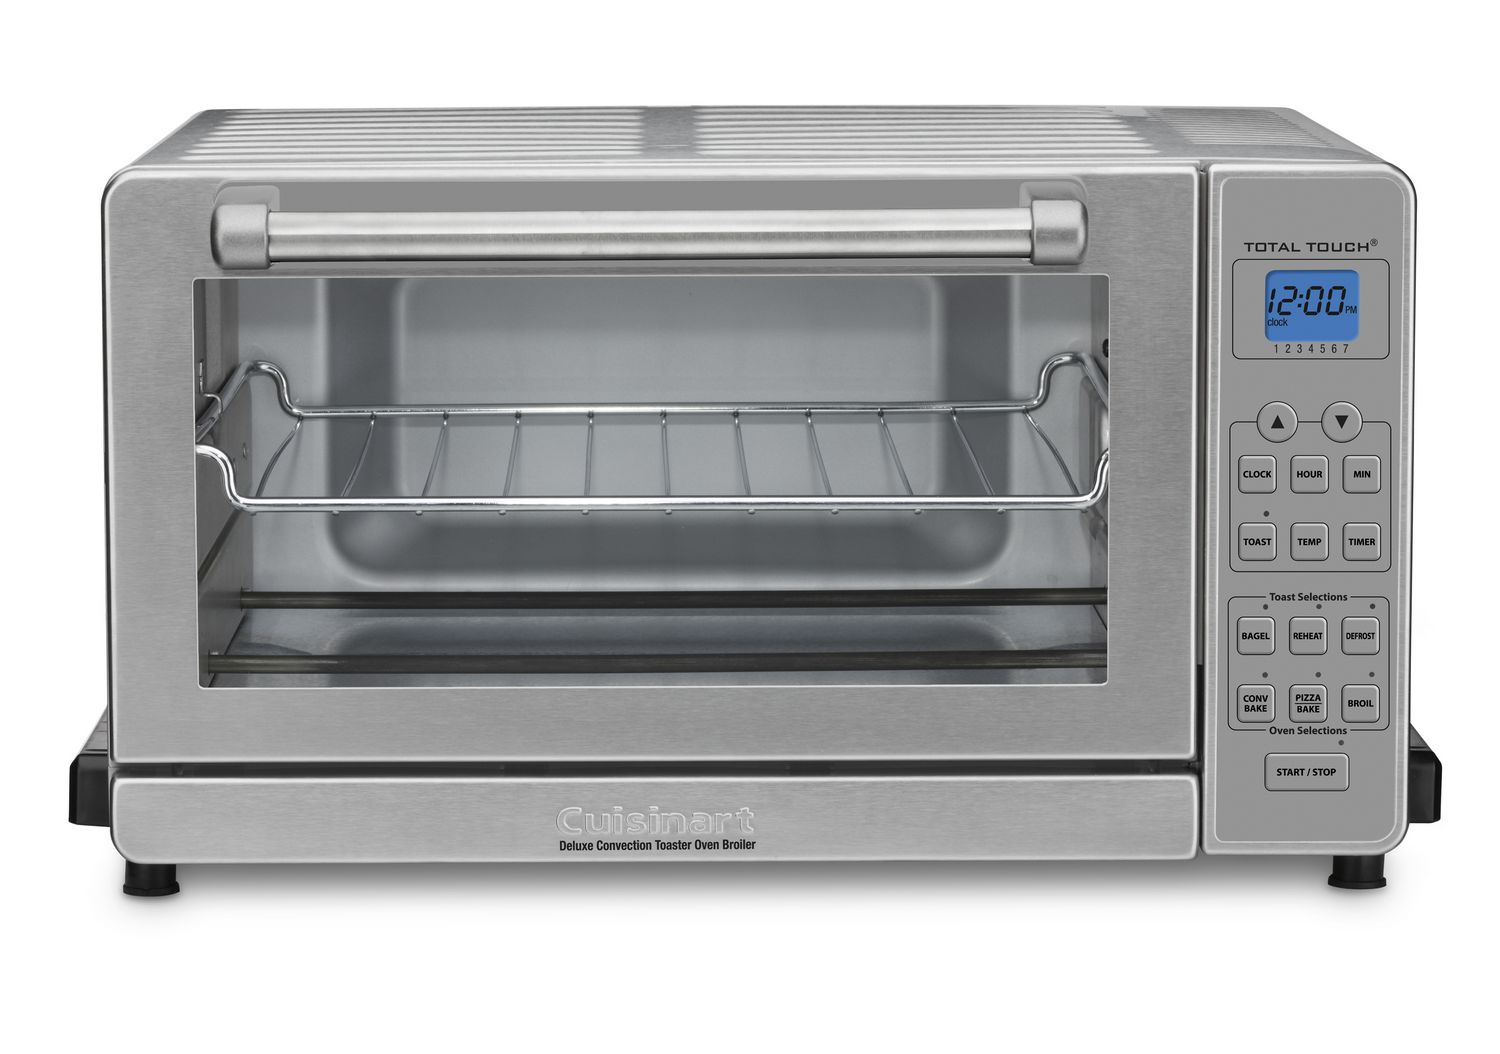 Cuisinart 0.6 cu.ft. Deluxe Convection Toaster Oven Broiler